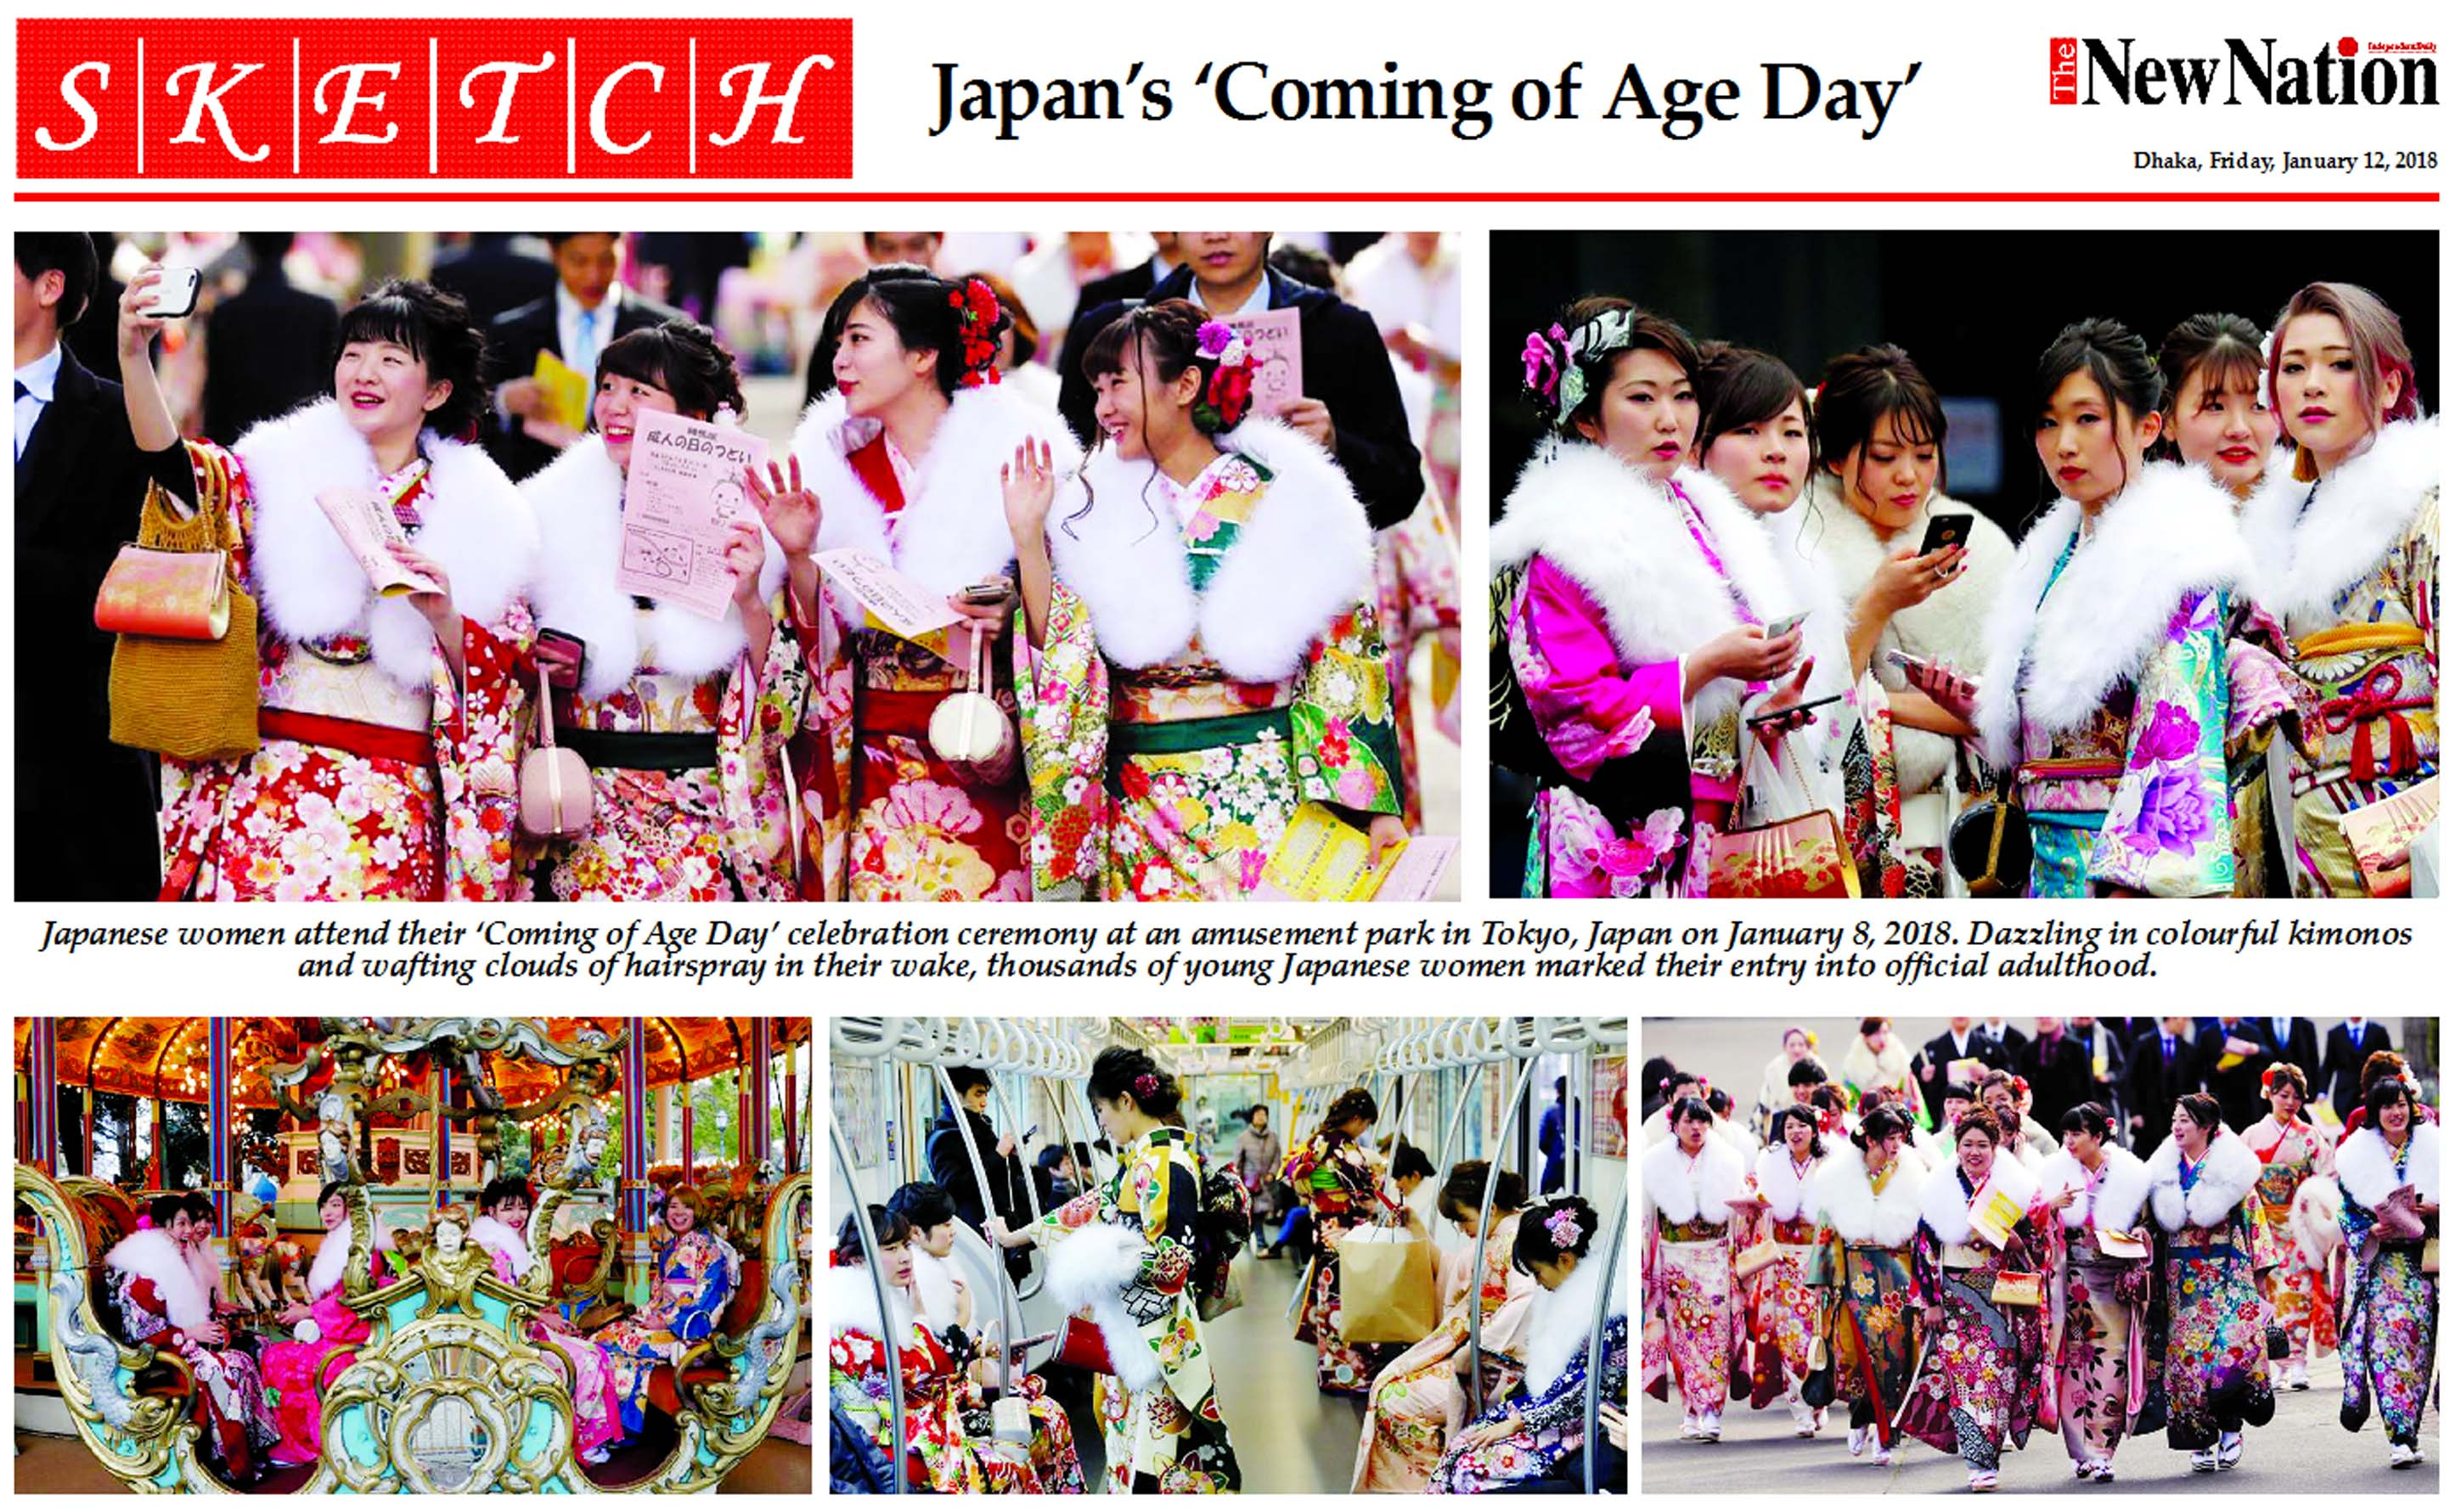 Japan's 'Coming of Age Day'